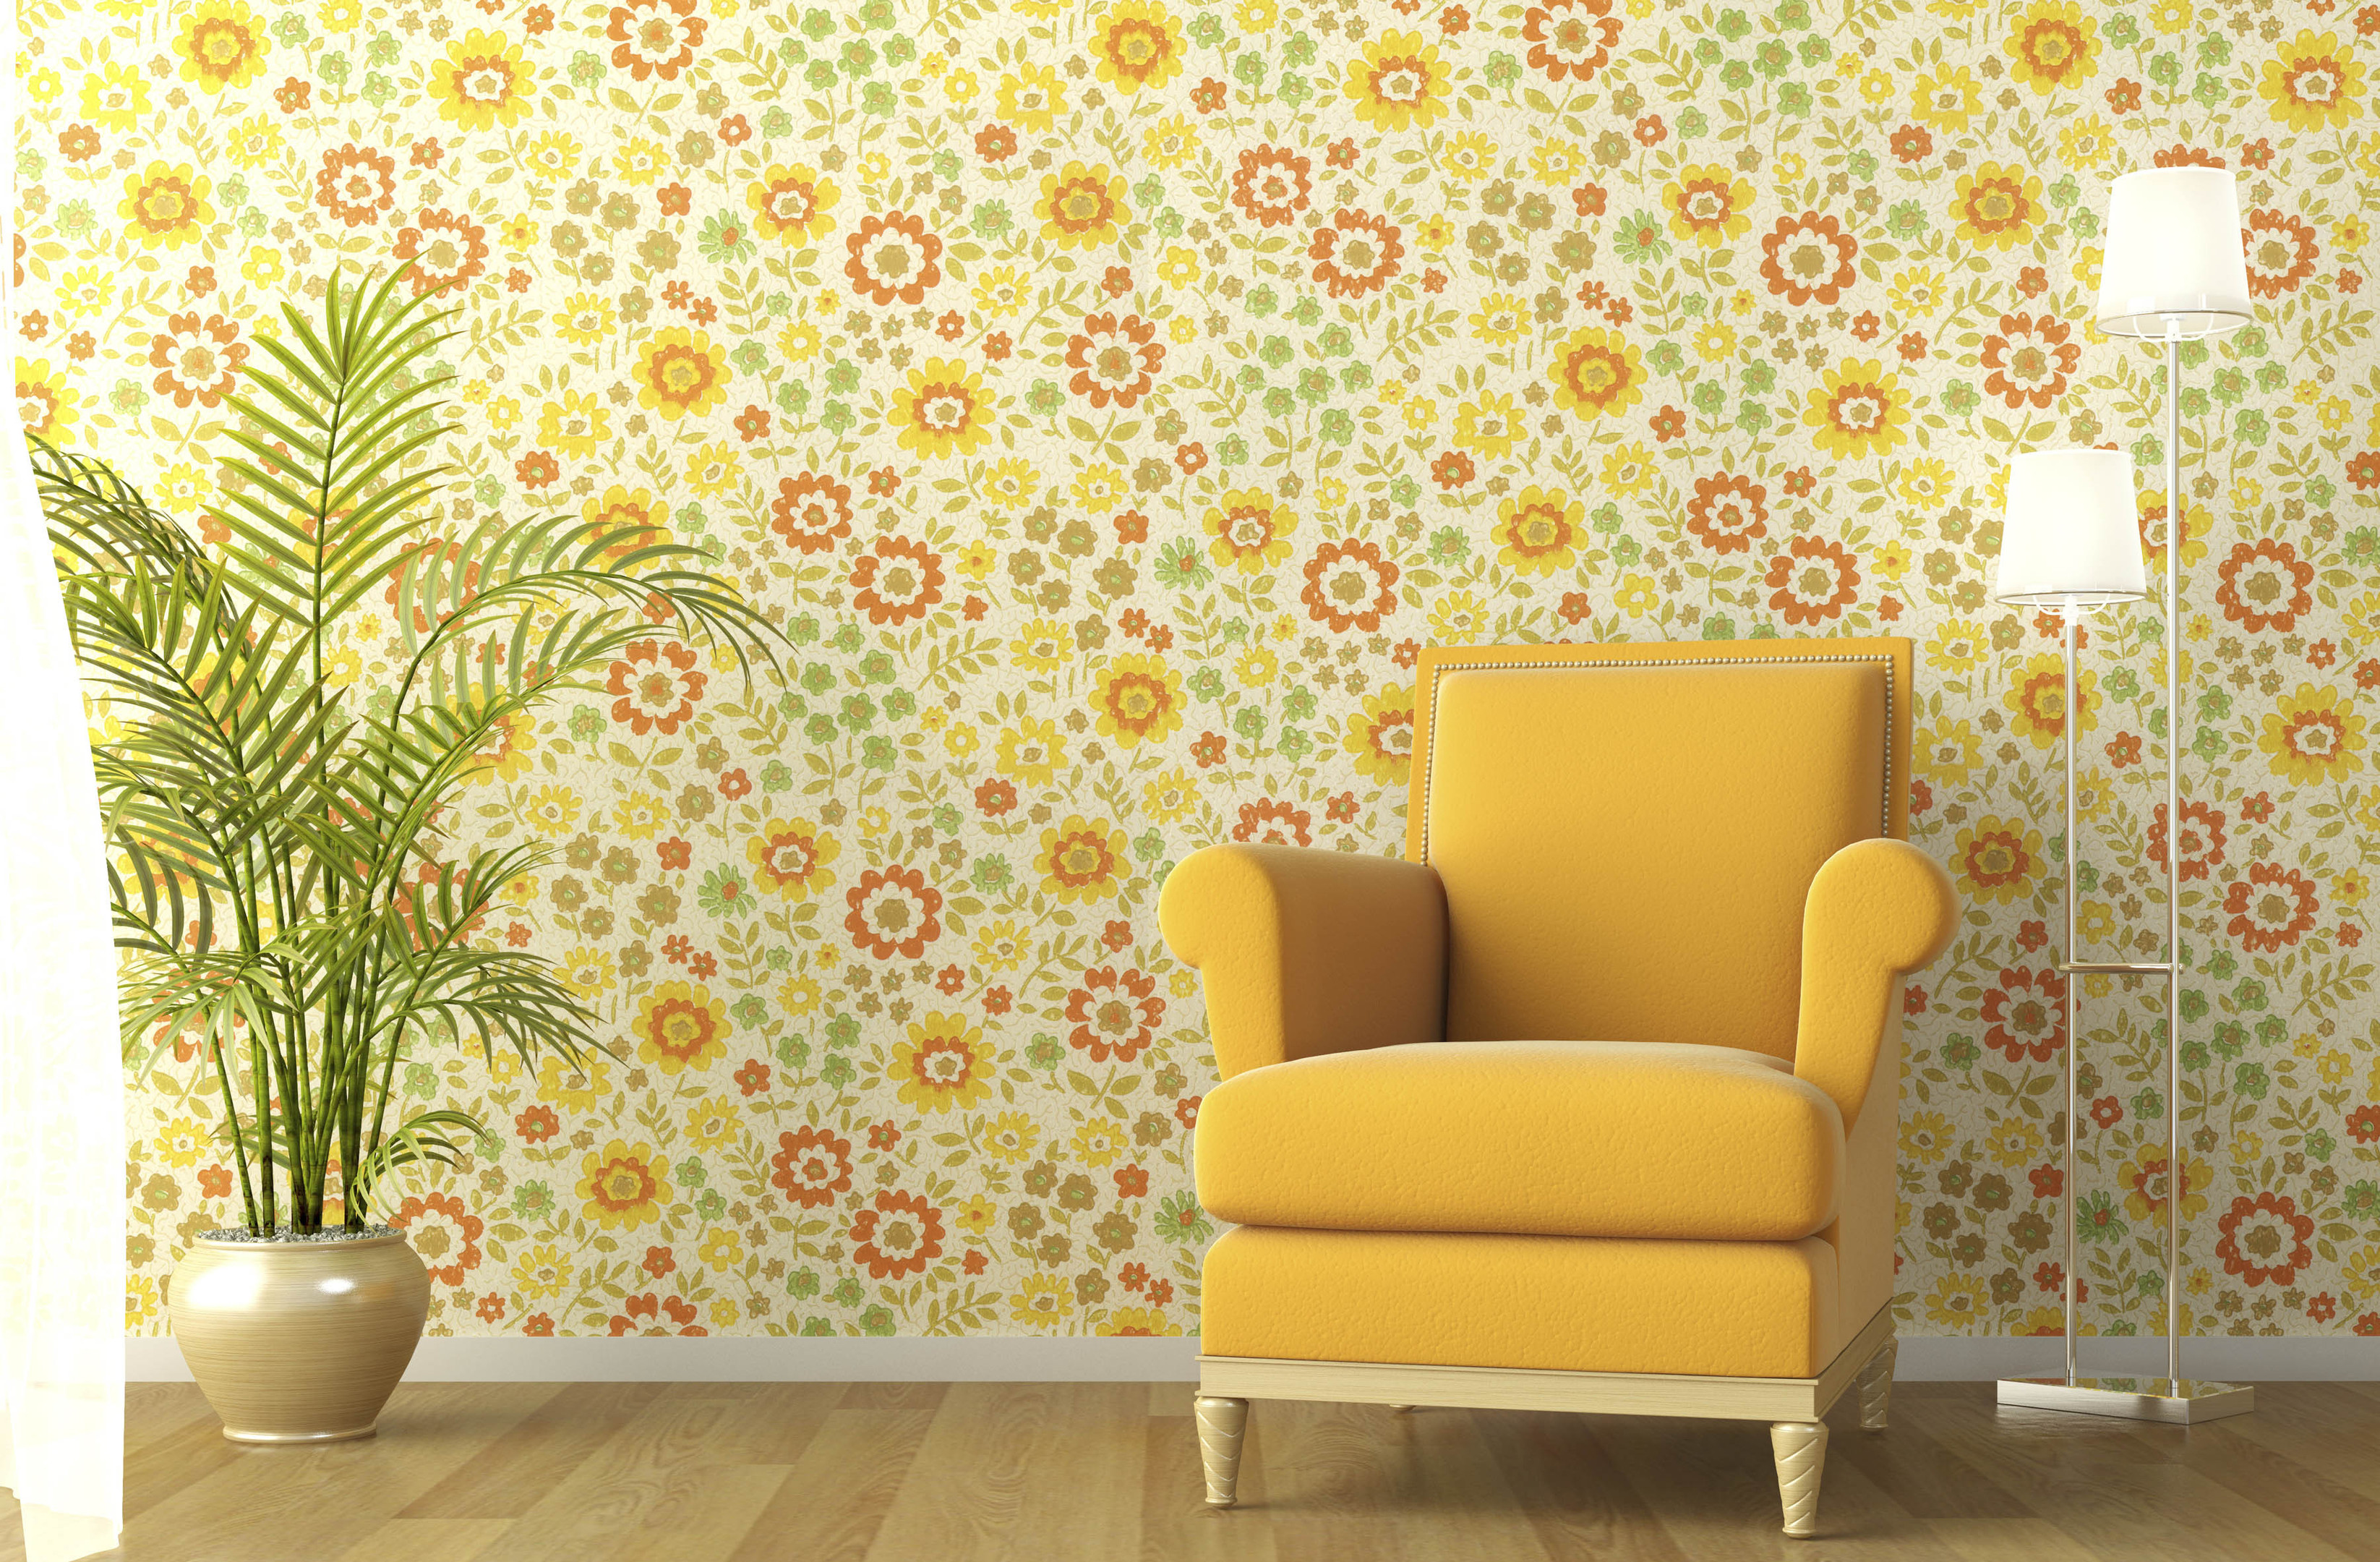 How to get the most from your wallpaper